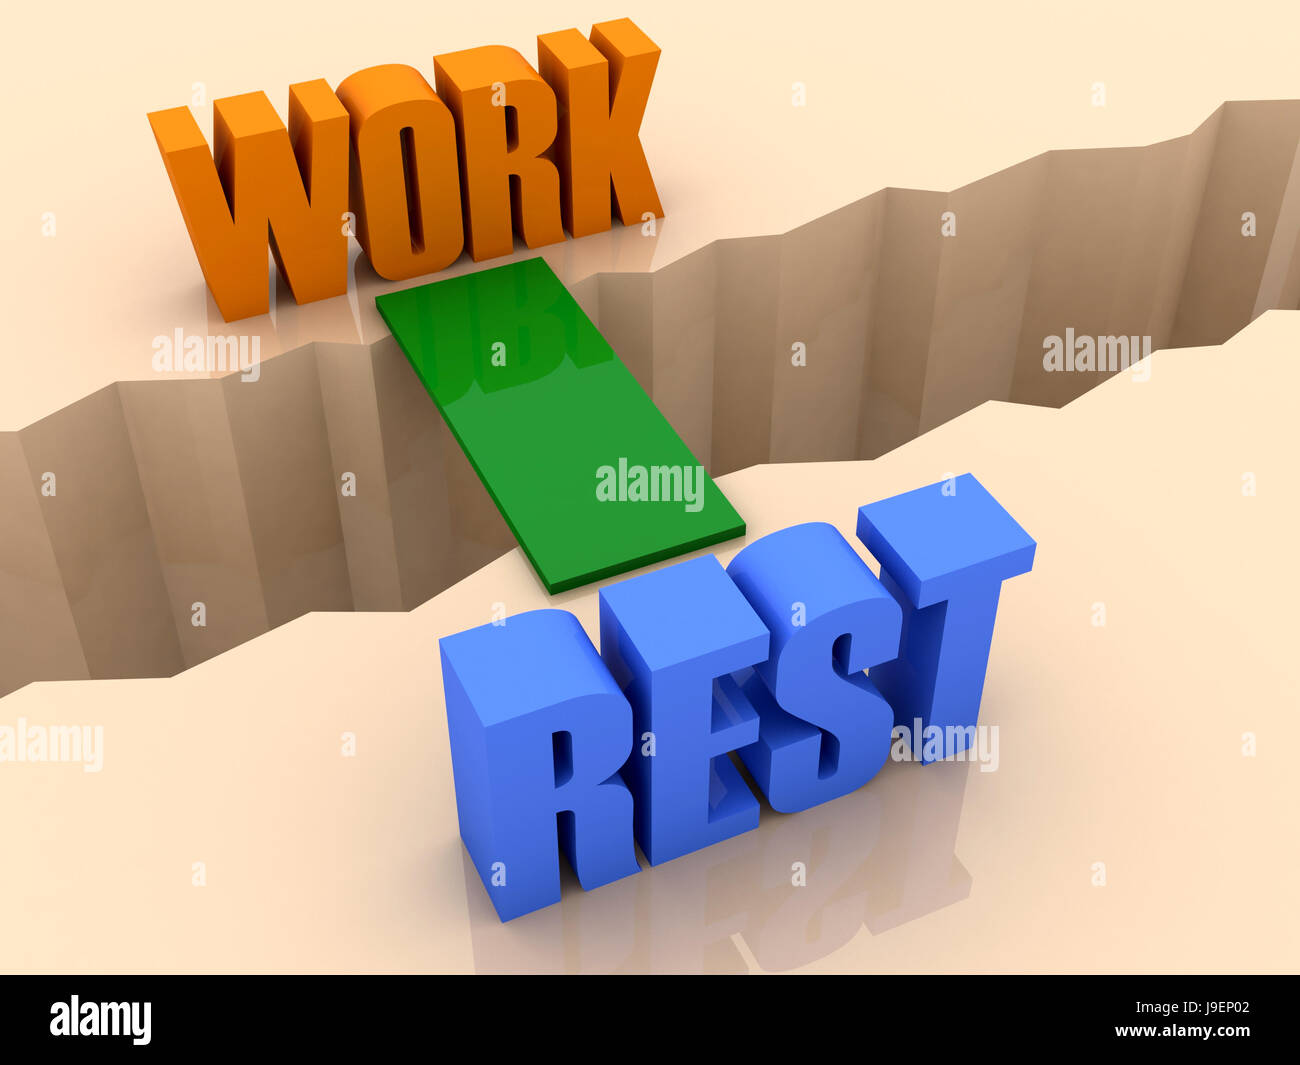 Two words WORK and RESTunited by bridge through separation crack. Concept 3D illustration. - Stock Image